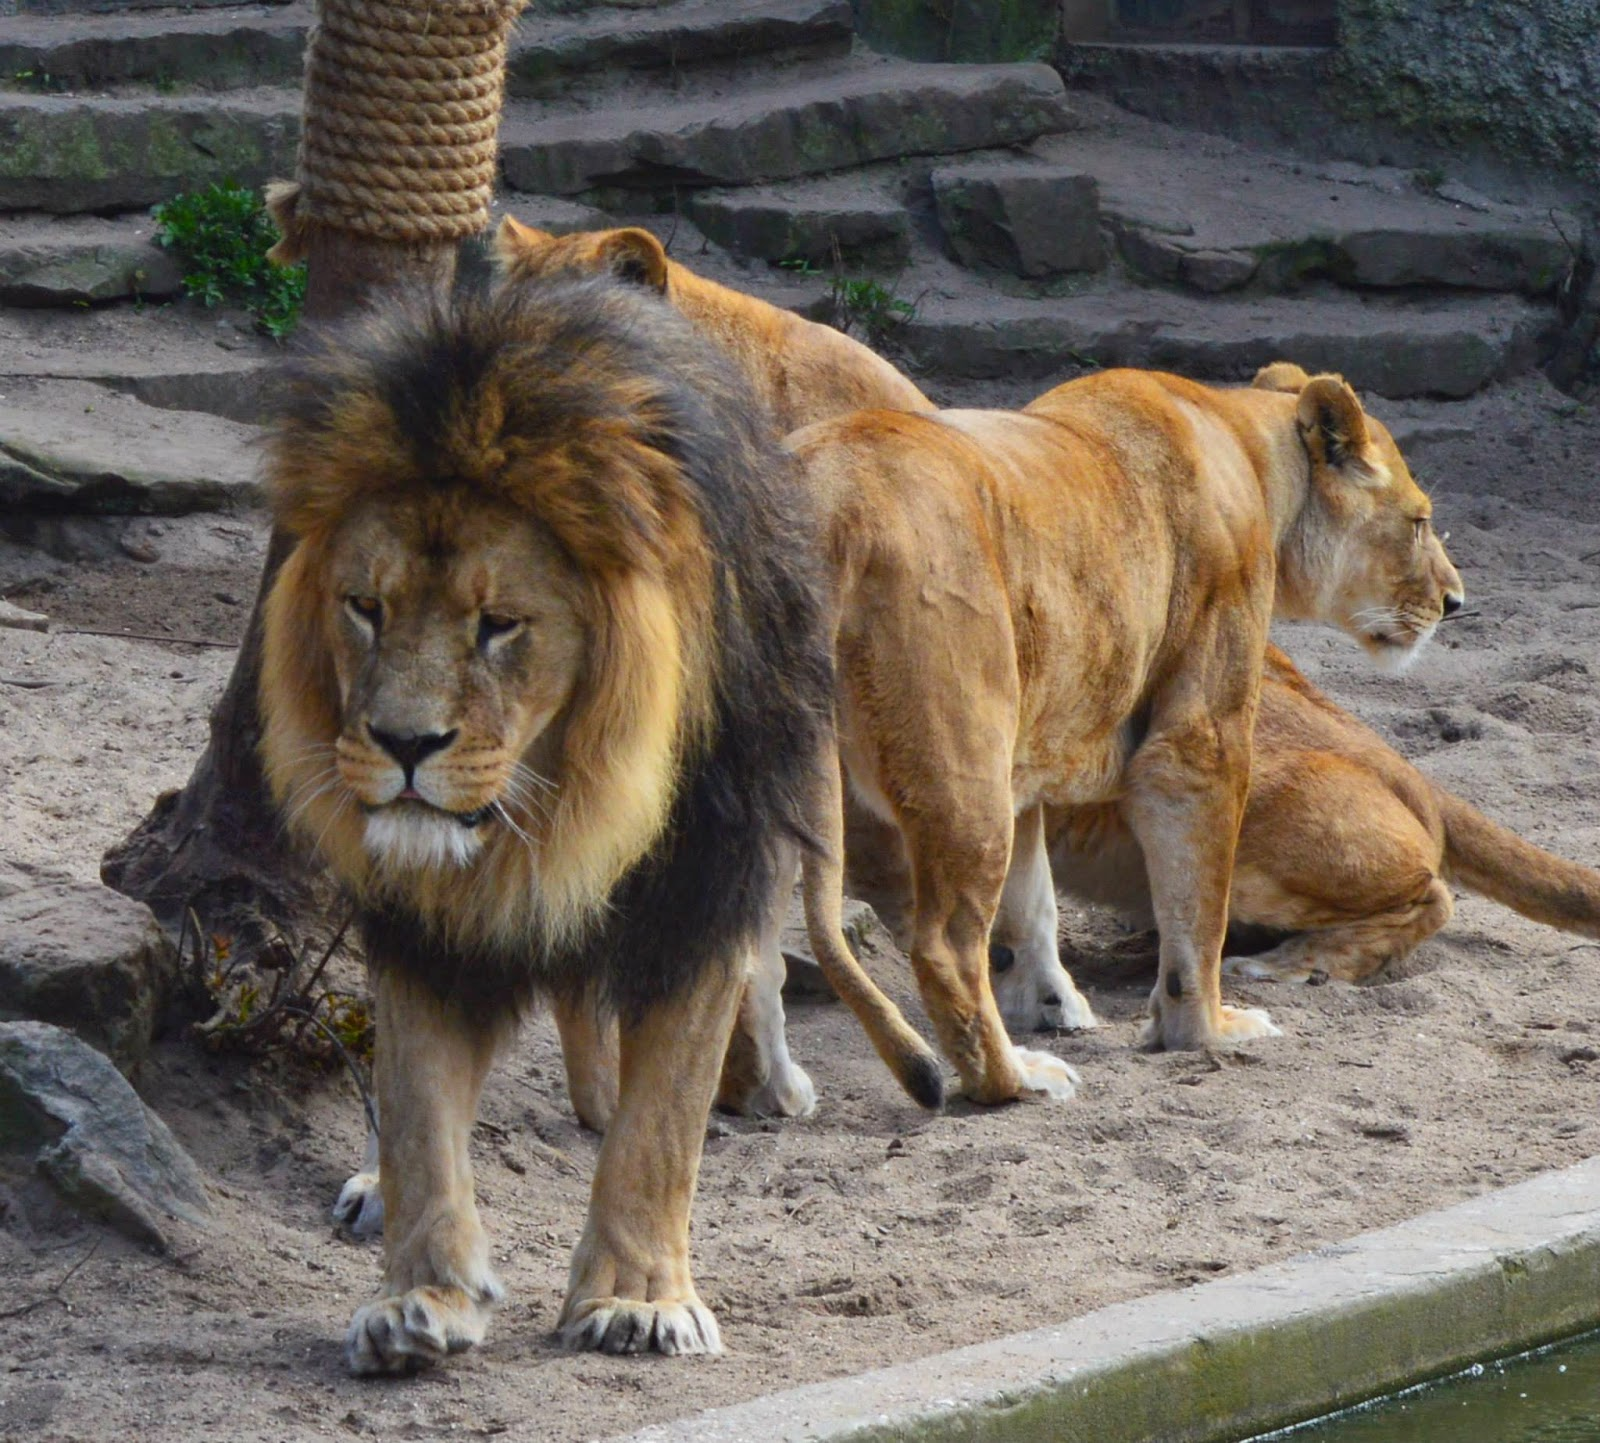 Lions at Amsterdam zoo